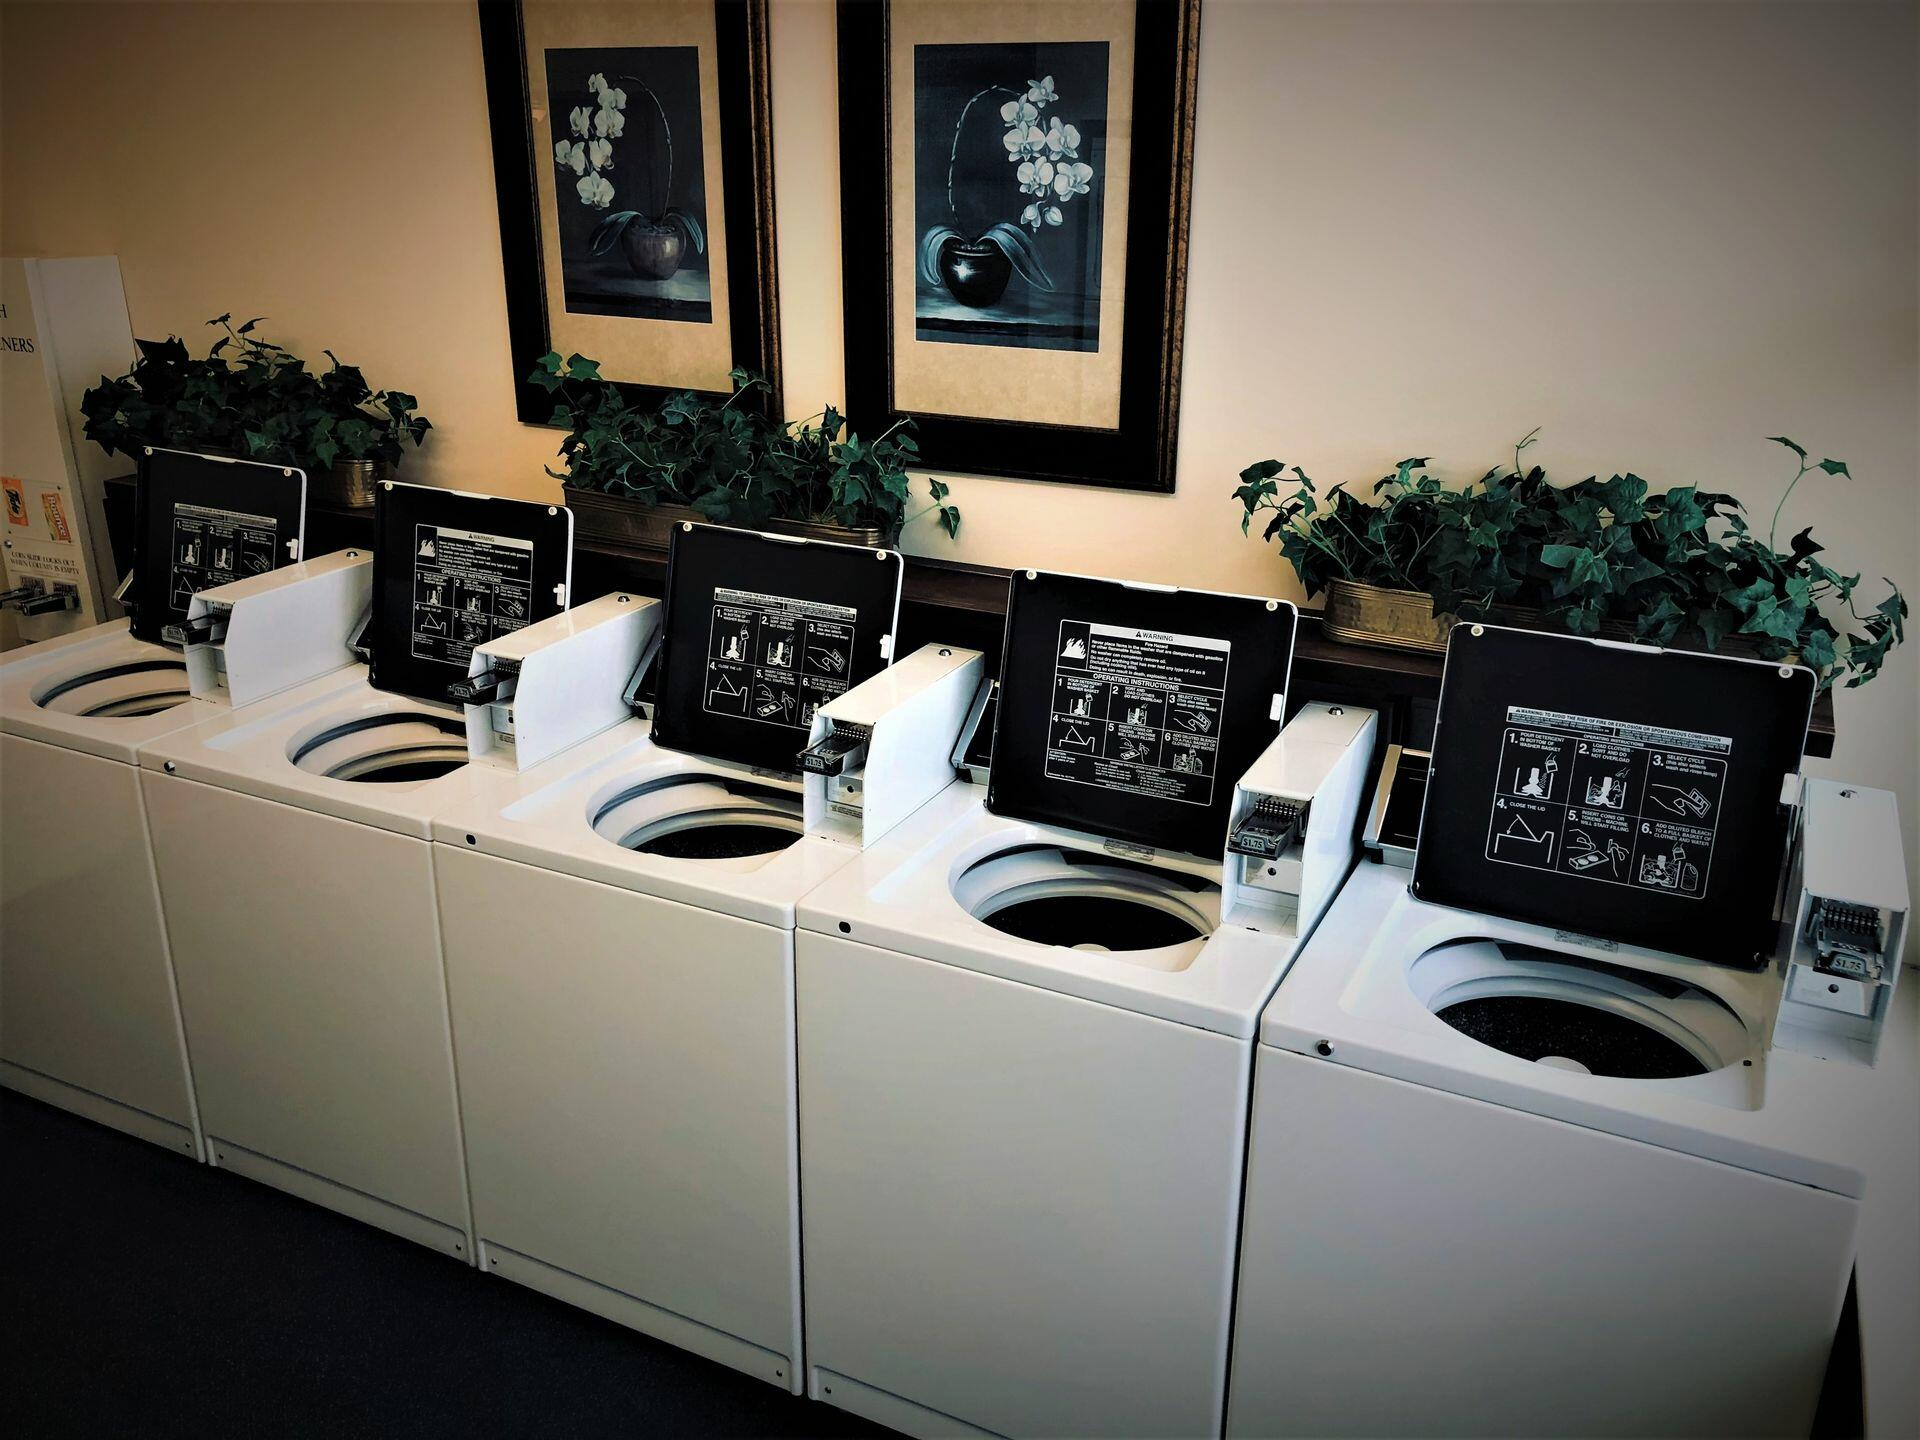 Guest Laundry room with washing machines at Hotel at Old Town